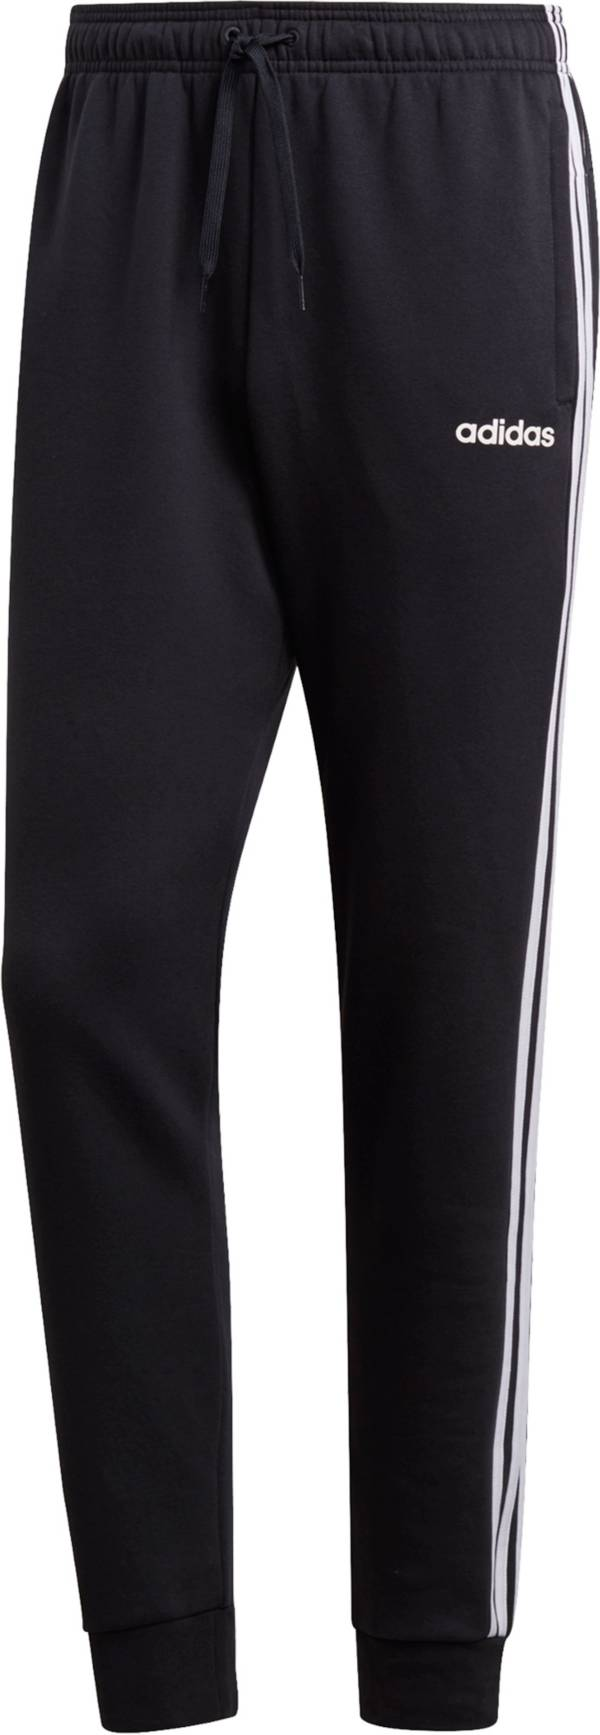 adidas Men's Essentials 3 Stripes Tapered Jogger Pants product image